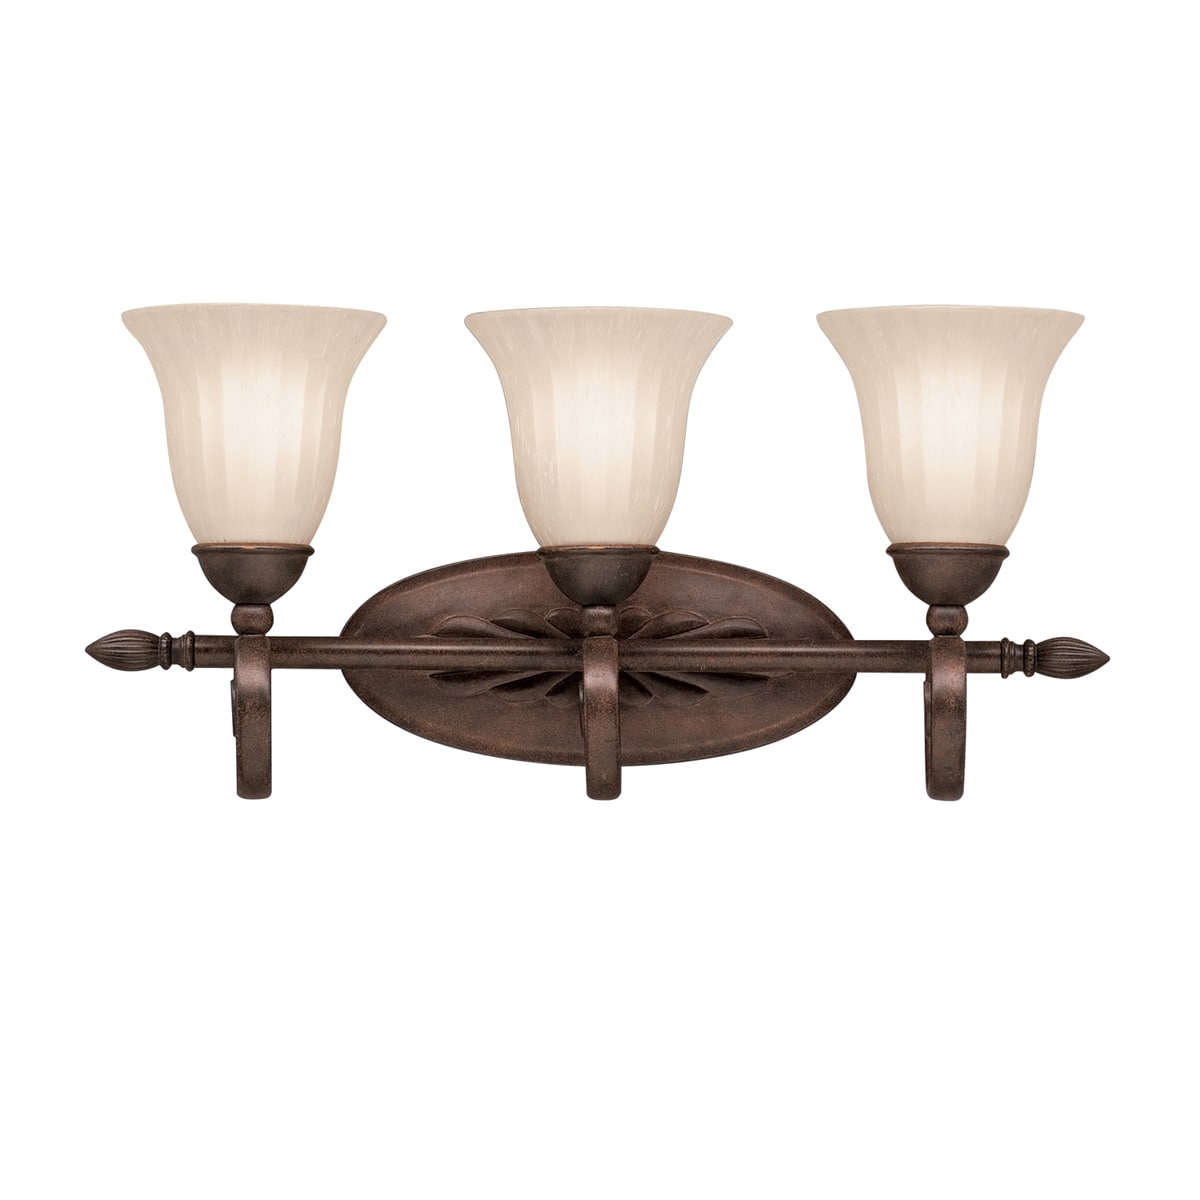 Willowmore 23 5 wide 3 bulb bathroom lighting fixture